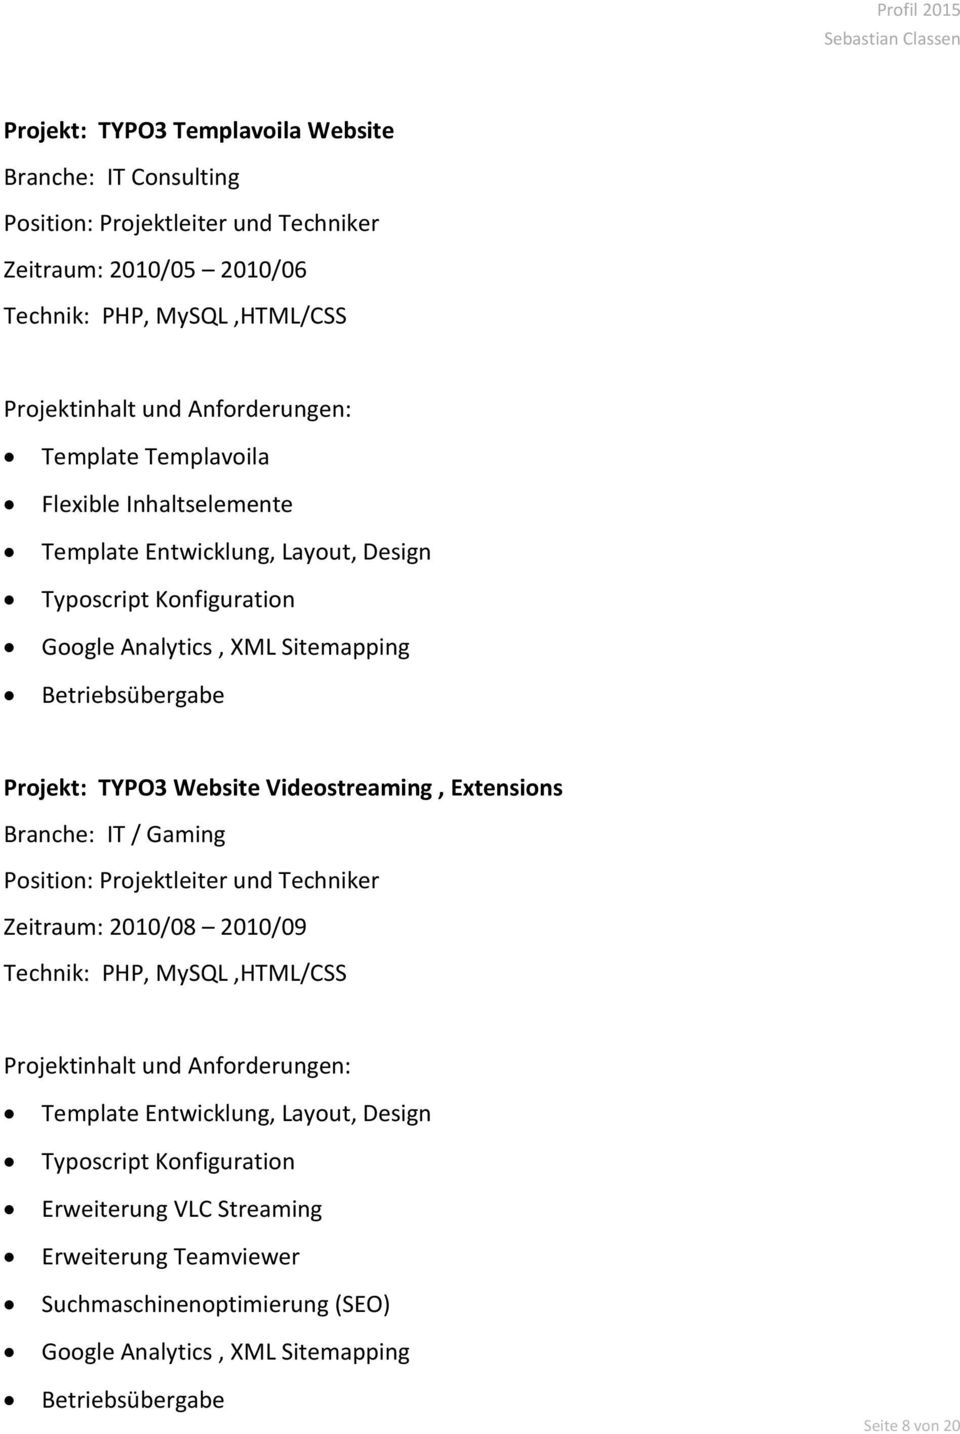 TYPO3 Website Videostreaming, Extensions Branche: IT / Gaming Zeitraum: 2010/08 2010/09 Technik: PHP, MySQL,HTML/CSS